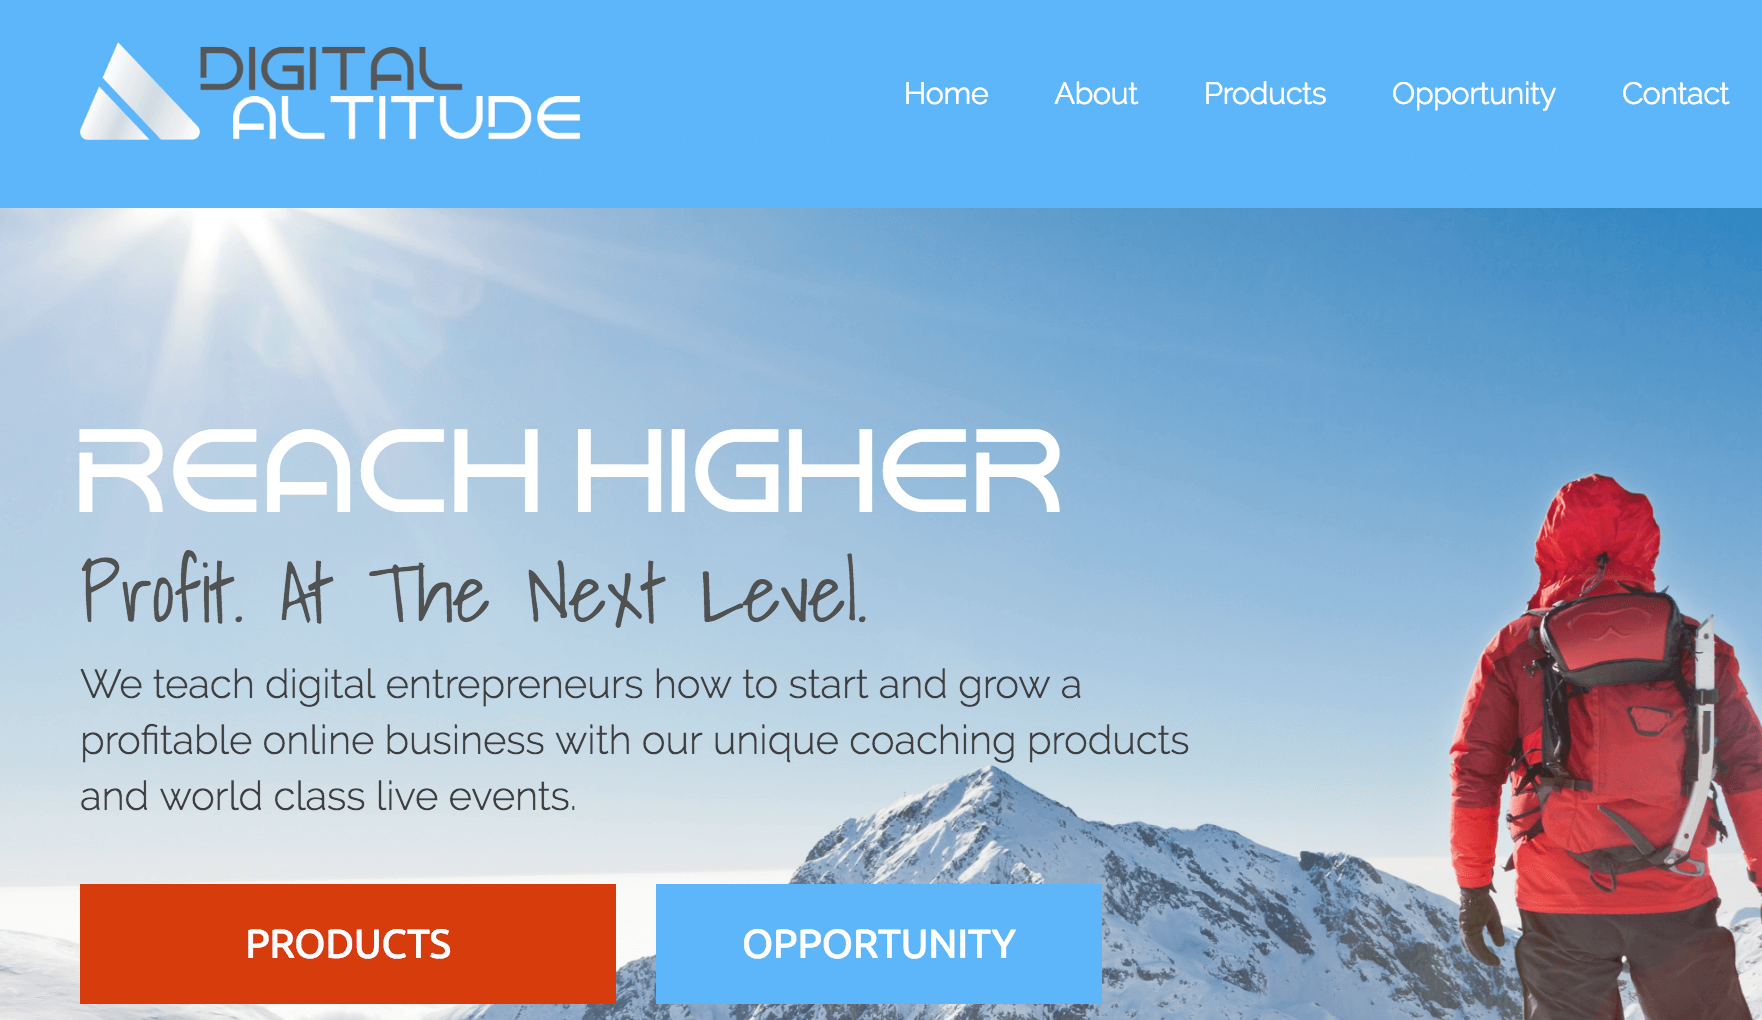 digital-altitude-website